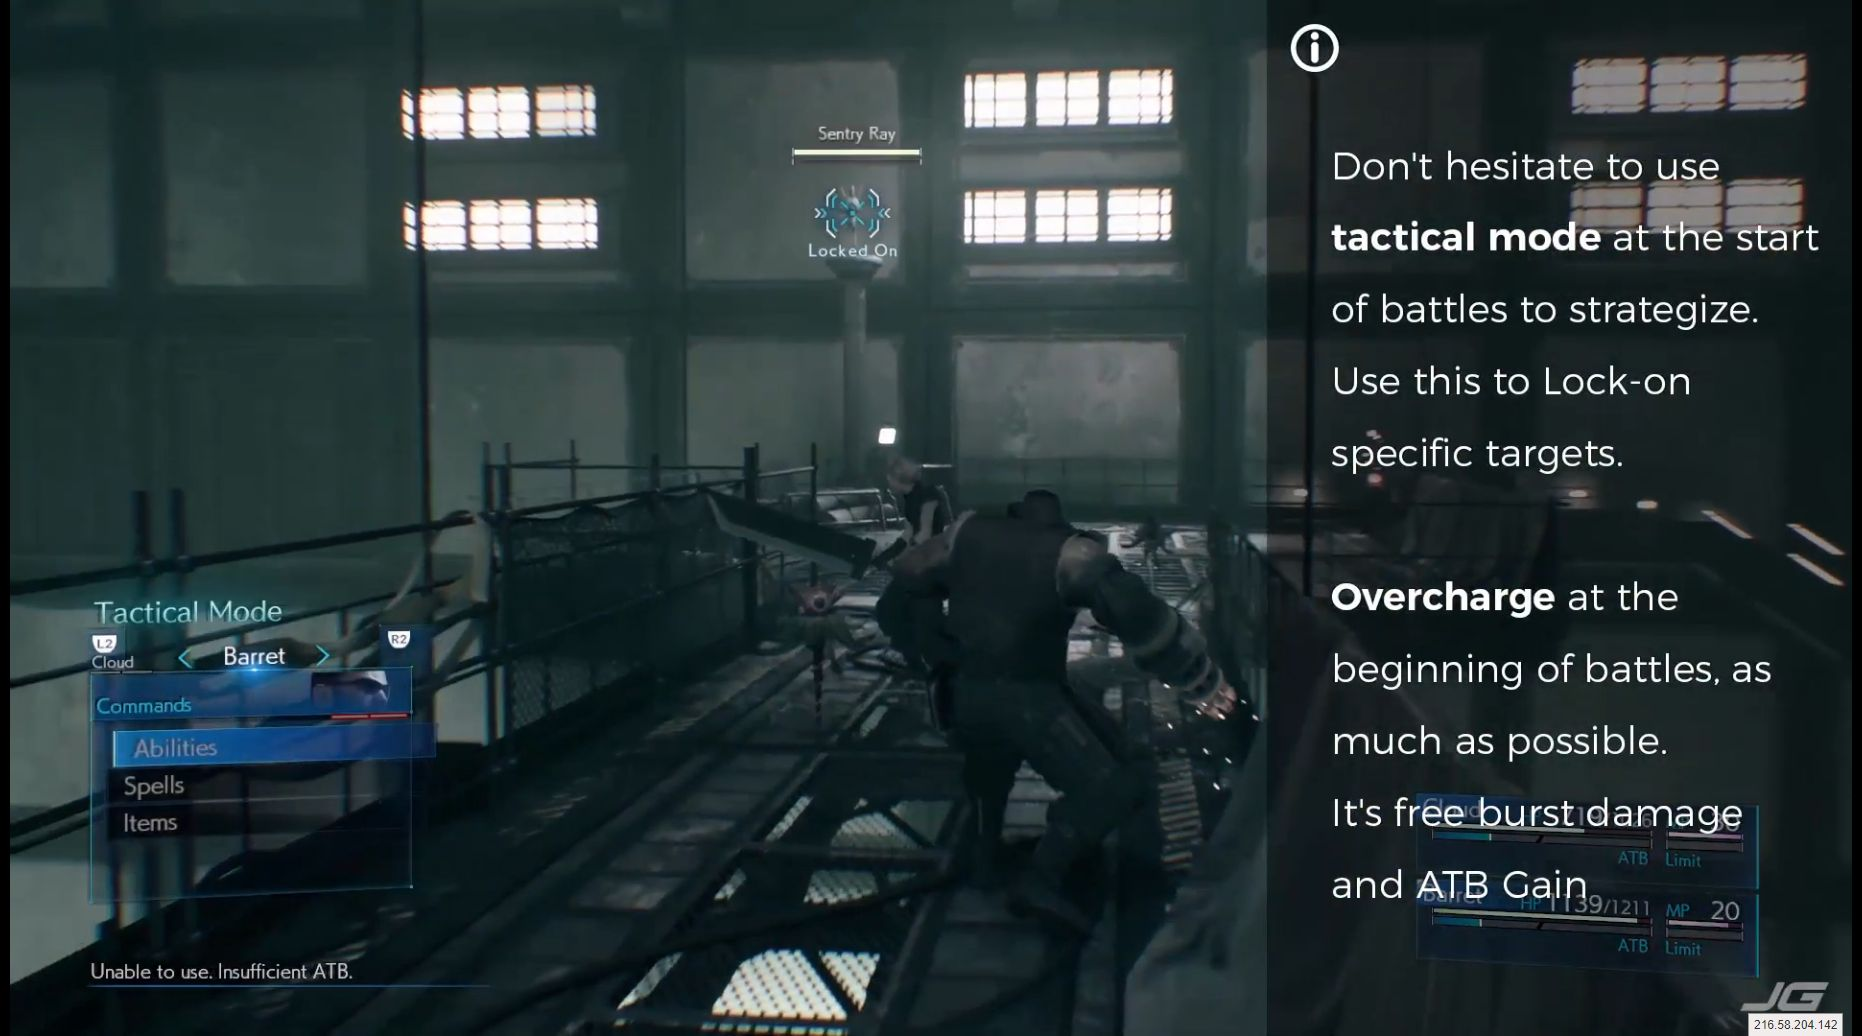 Don't hesitate to use tactical mode at the start of battles to strategize, Use this to (R3) Lock-on specific targets, (Triangle) Overcharge at the beginning of battles, as much as possible, It's free burst damage and ATB Gain